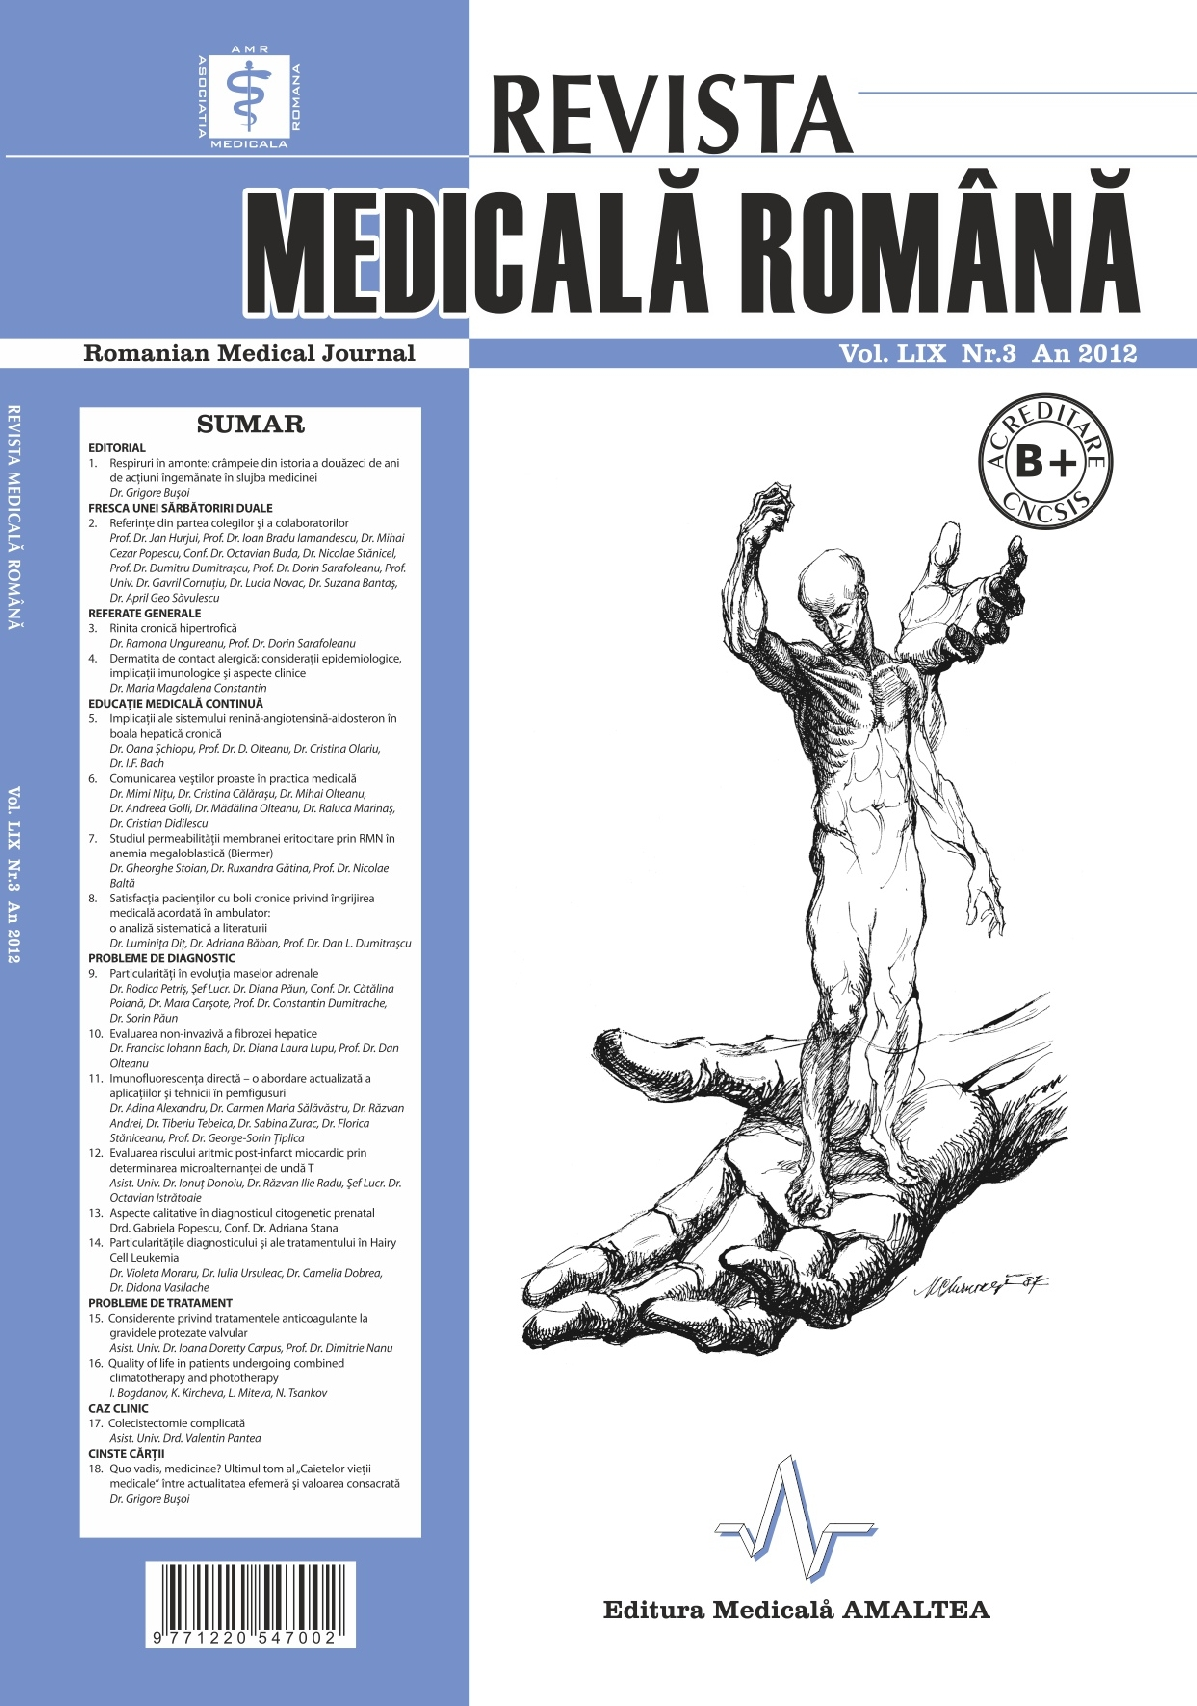 REVISTA MEDICALA ROMANA - Romanian Medical Journal, Vol. LIX, No. 3, Year 2012